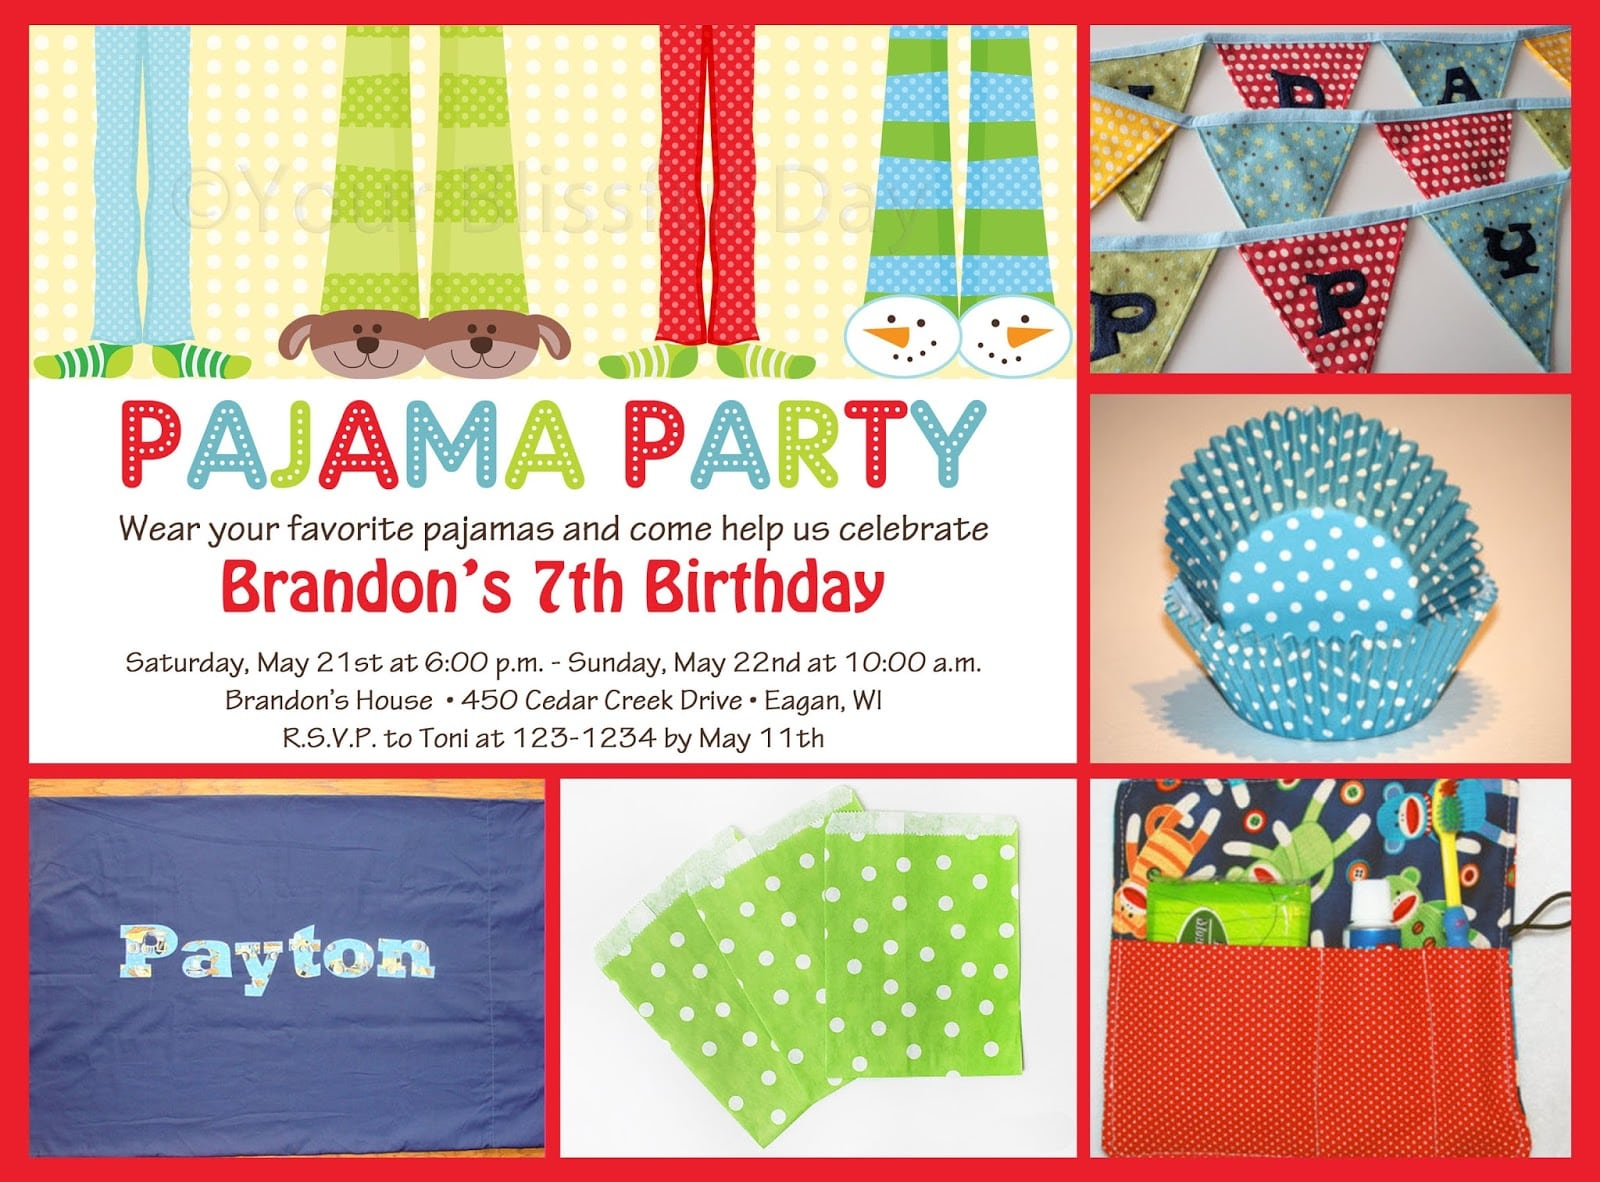 Splendid Pajama Party Invitations Wording Features Party Dress